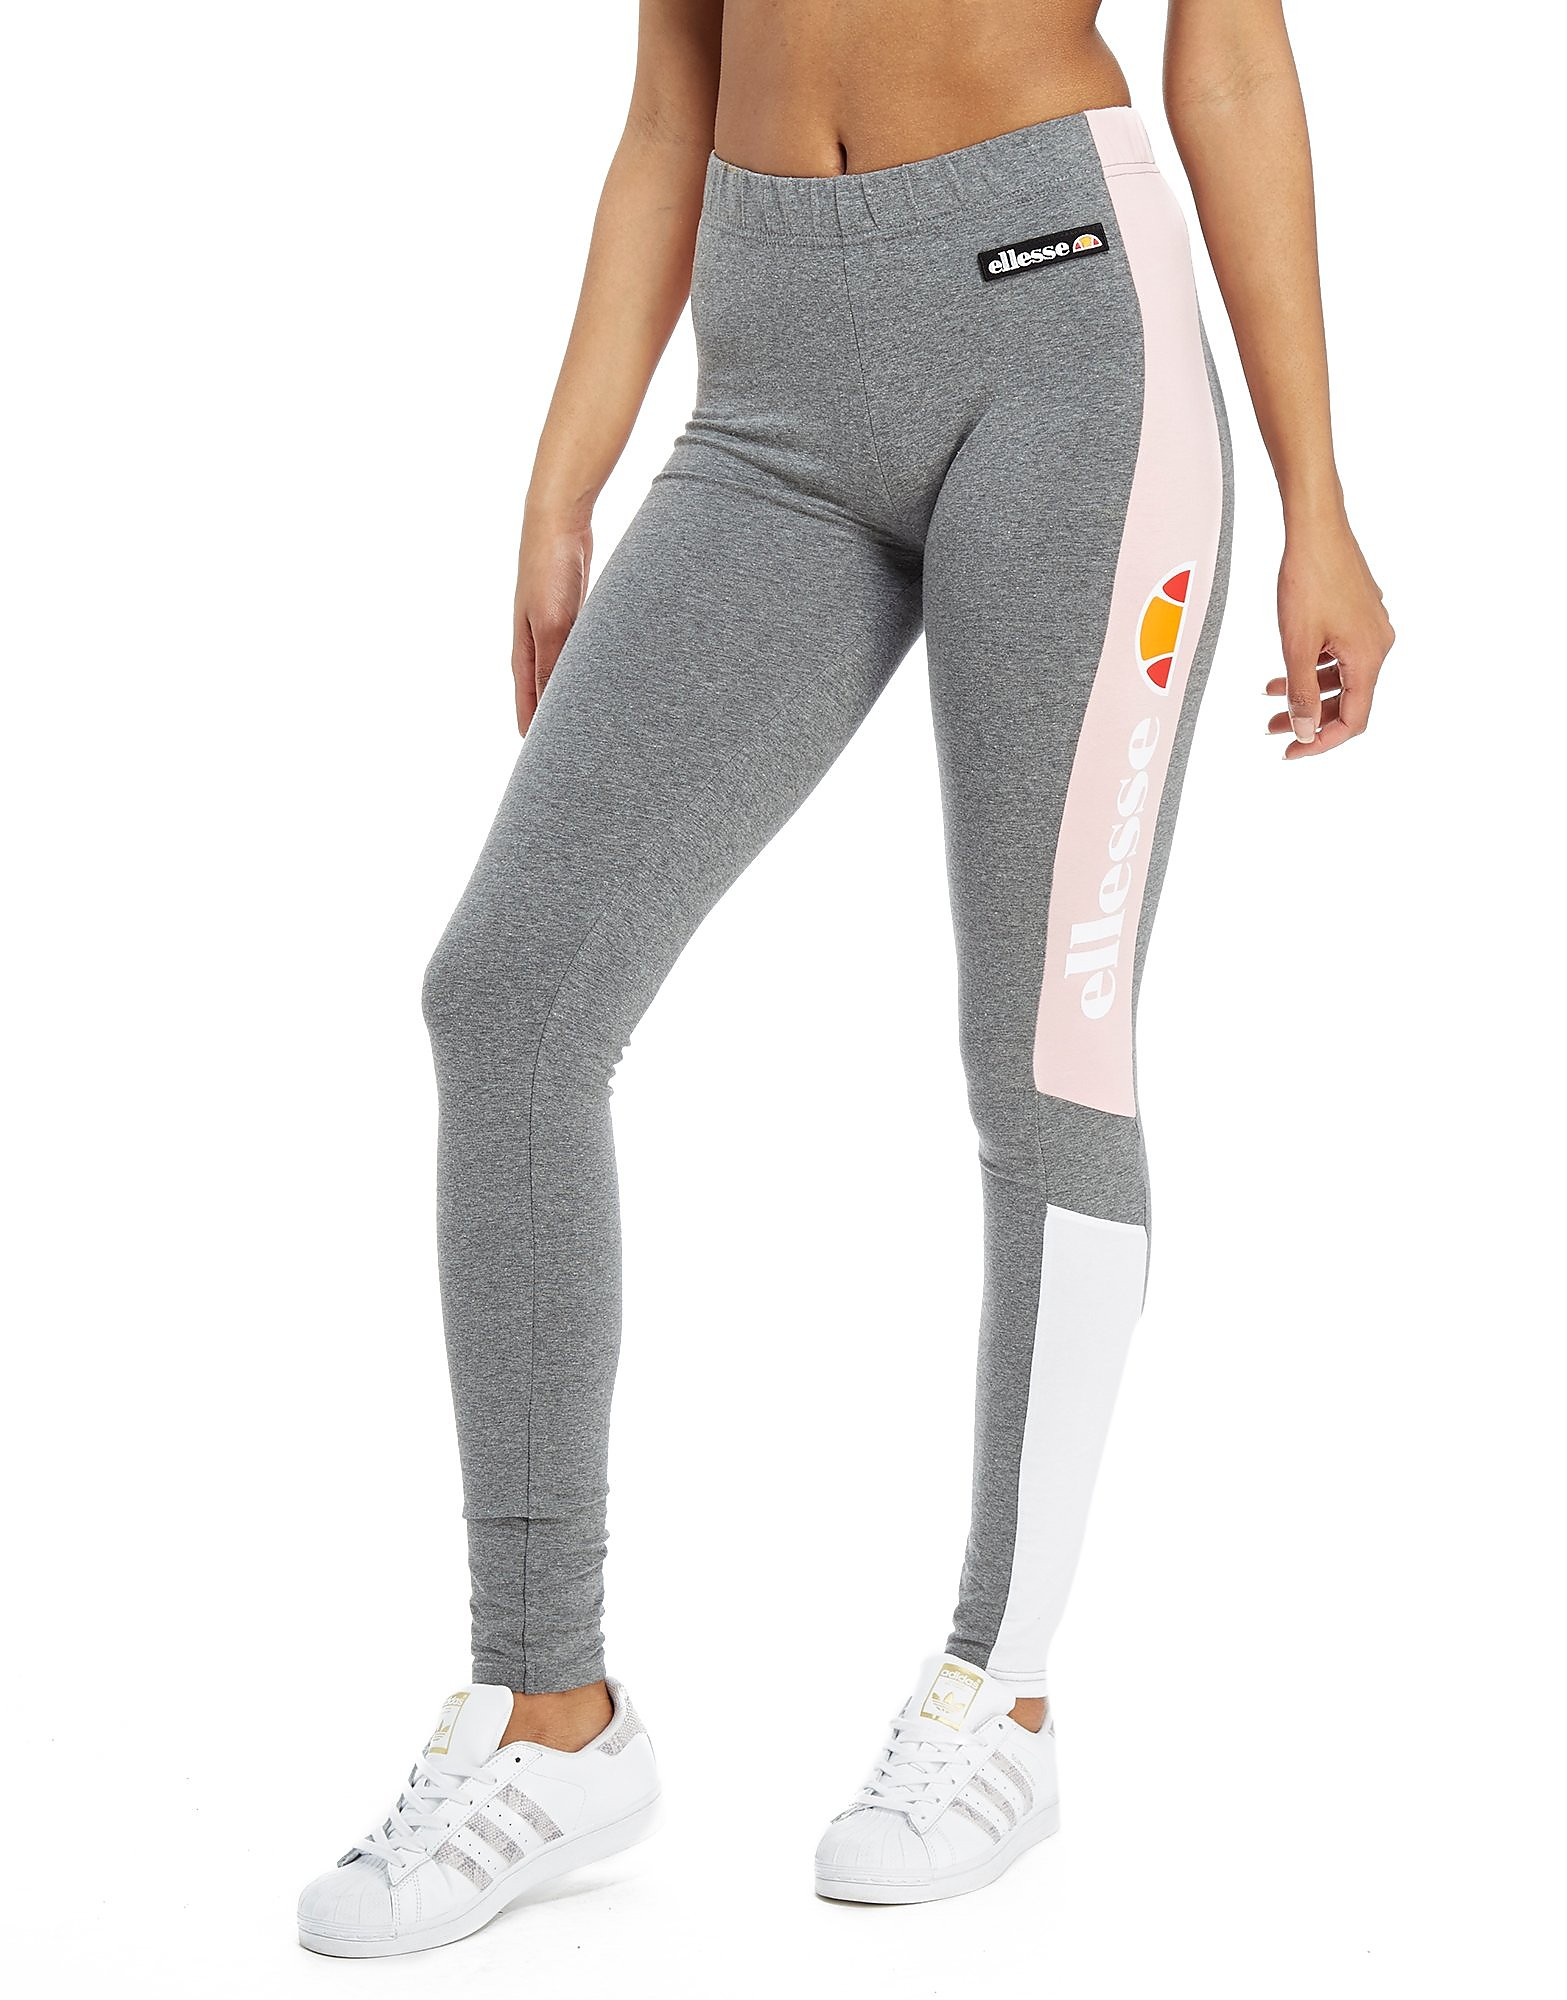 Ellesse Leggings Ellesse